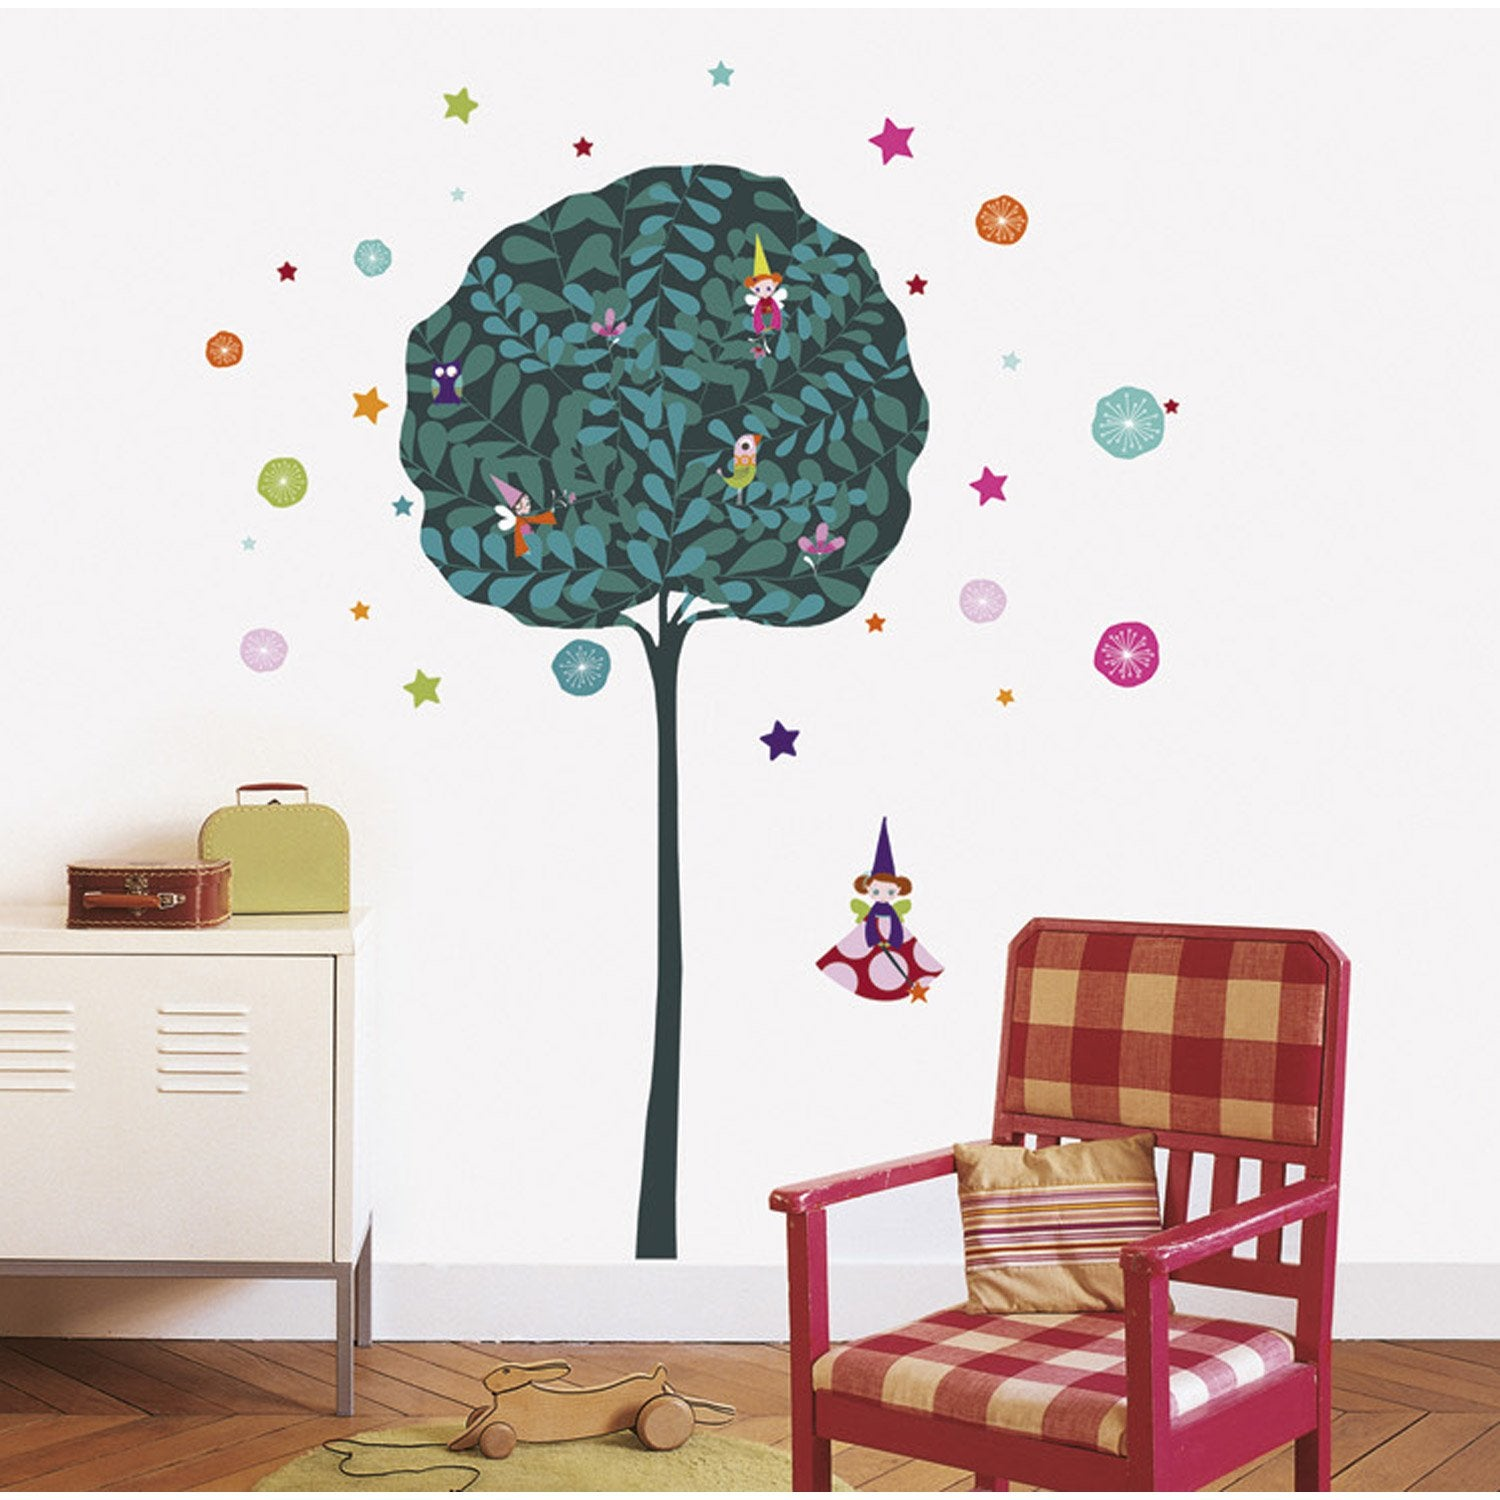 sticker l 39 arbre f e 49 cm x 69 cm leroy merlin. Black Bedroom Furniture Sets. Home Design Ideas